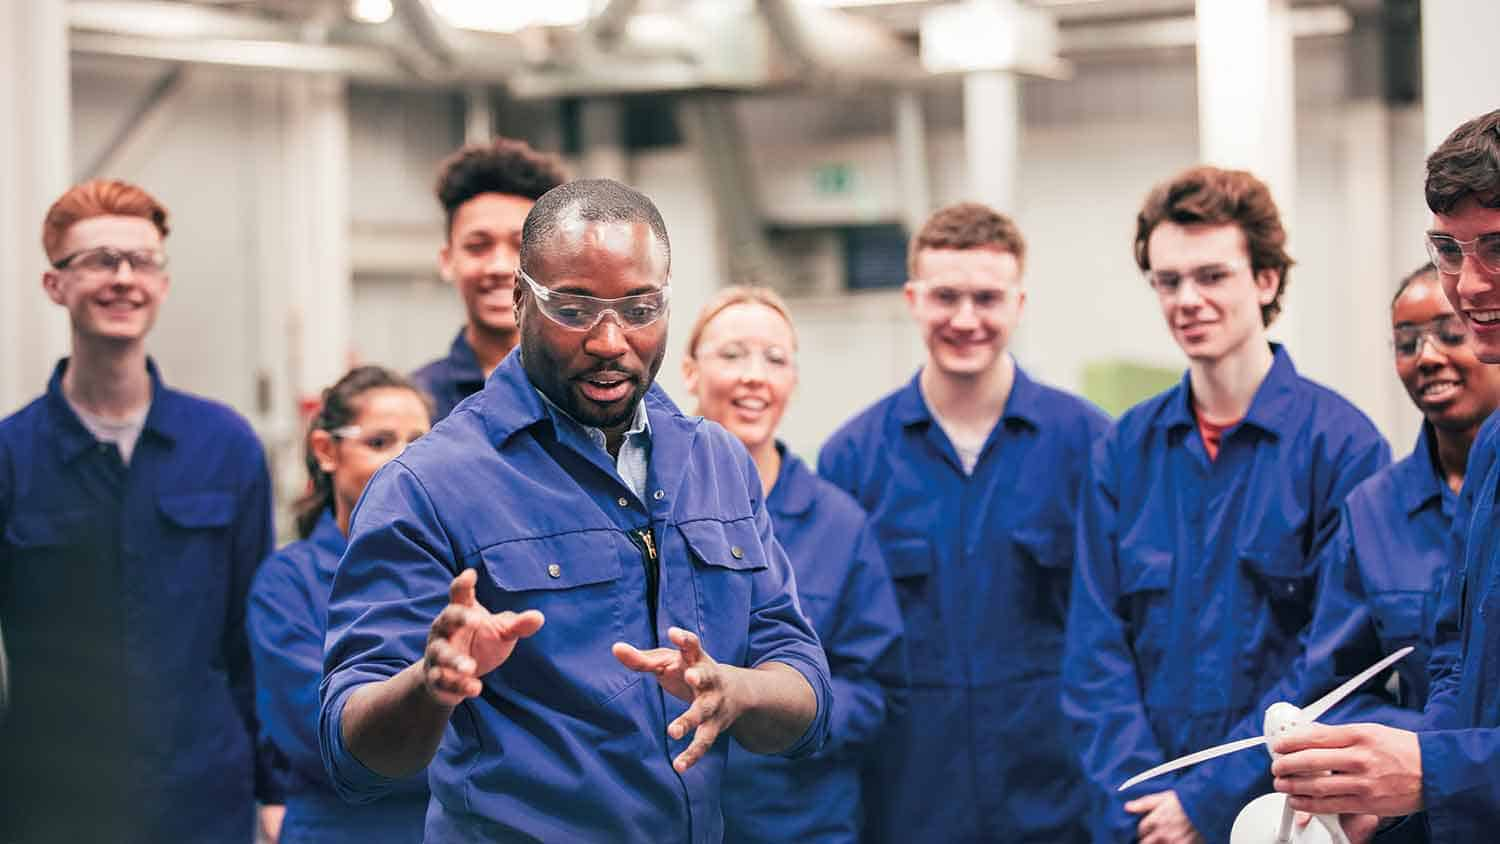 Group of apprentice mechanics listening to a teacher and smiling